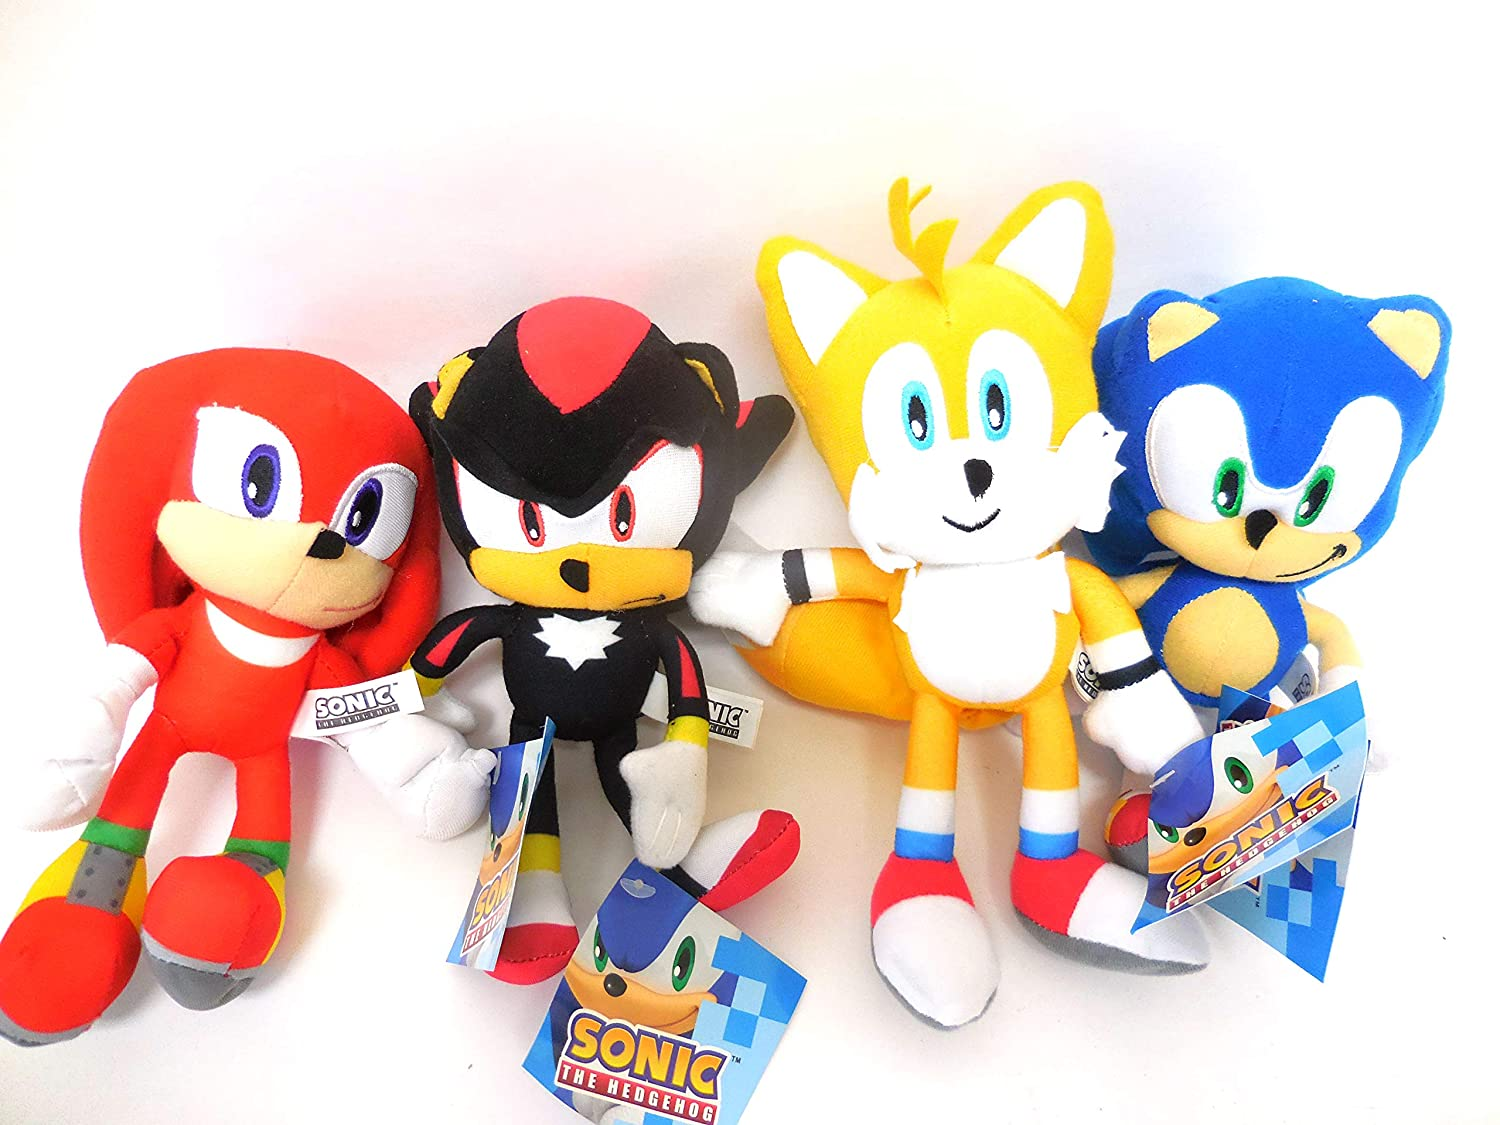 Buy Sega Sonic The Hedgehog X Sonic Shadow Knuckles Tails And Amy Rose 5 Plush Doll Stuffed Toy 15 Inches Sonic Is 9 Inches Only Great Gift For Boys And Girls